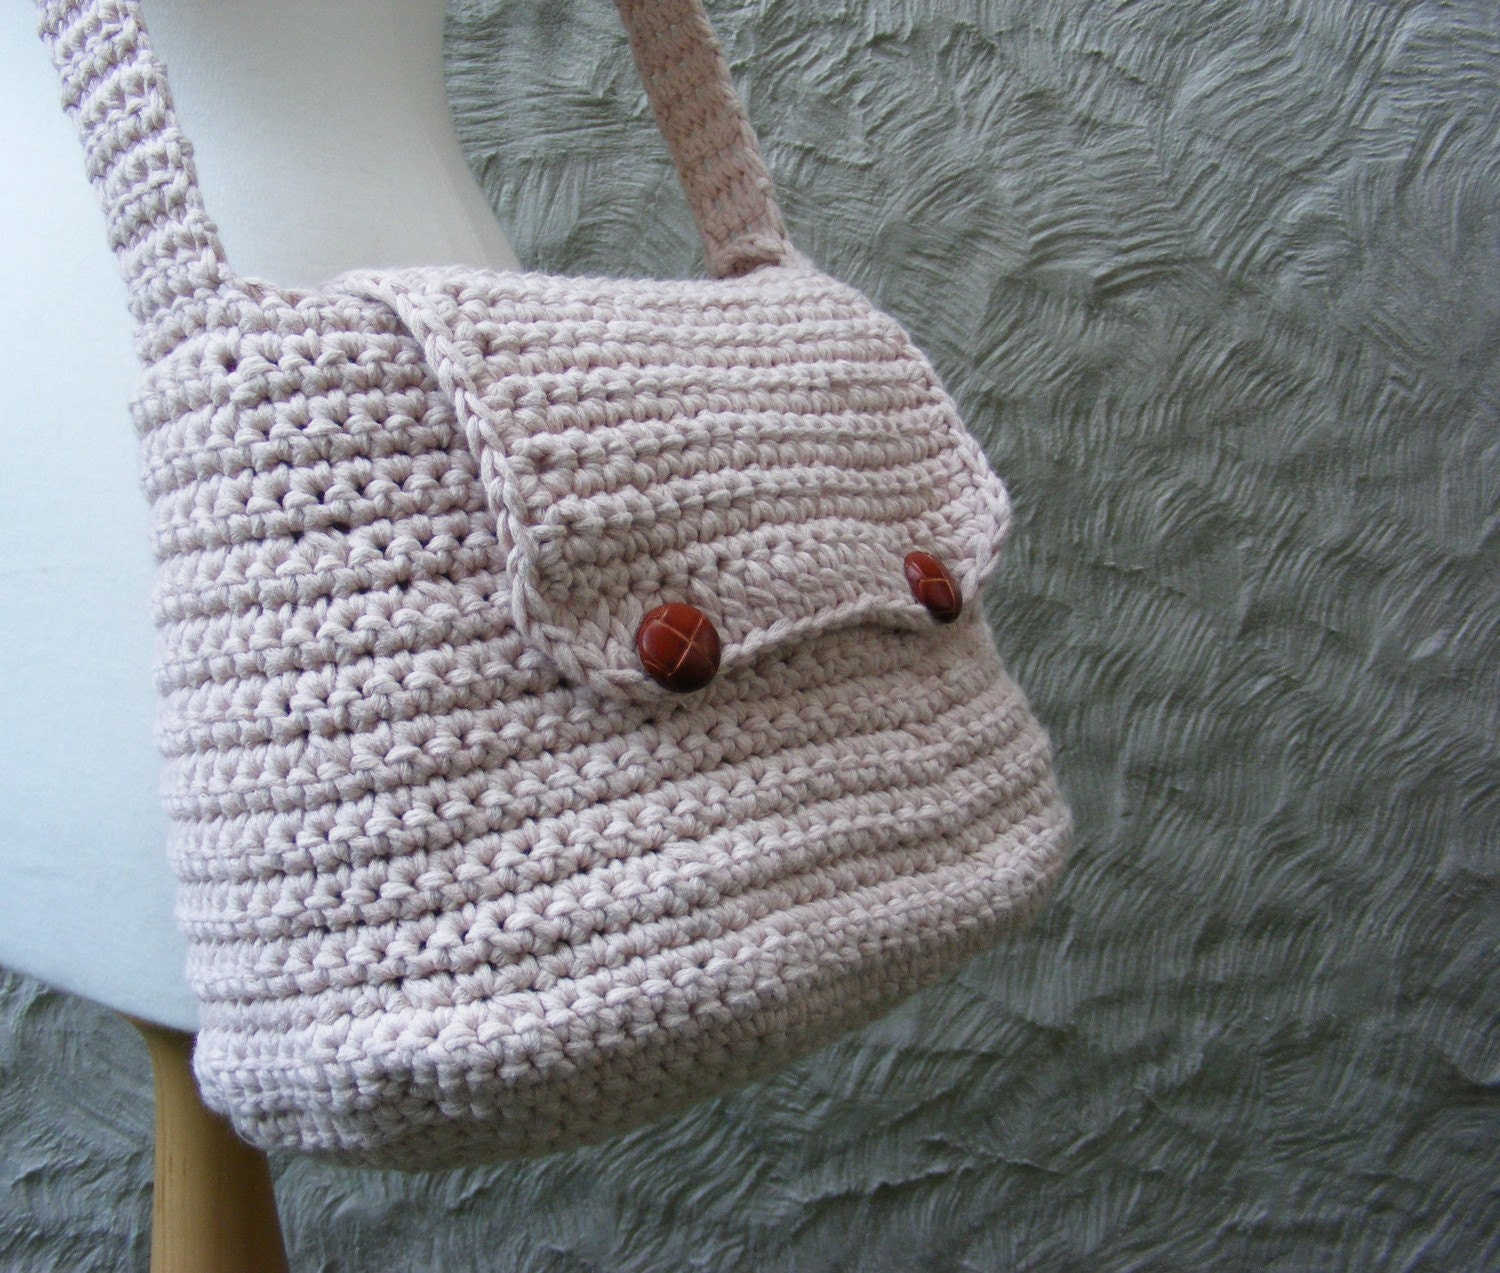 Knitting Bag Pattern : Knitting Needle Knitting Bag - Ravelry - a knit and crochet ...